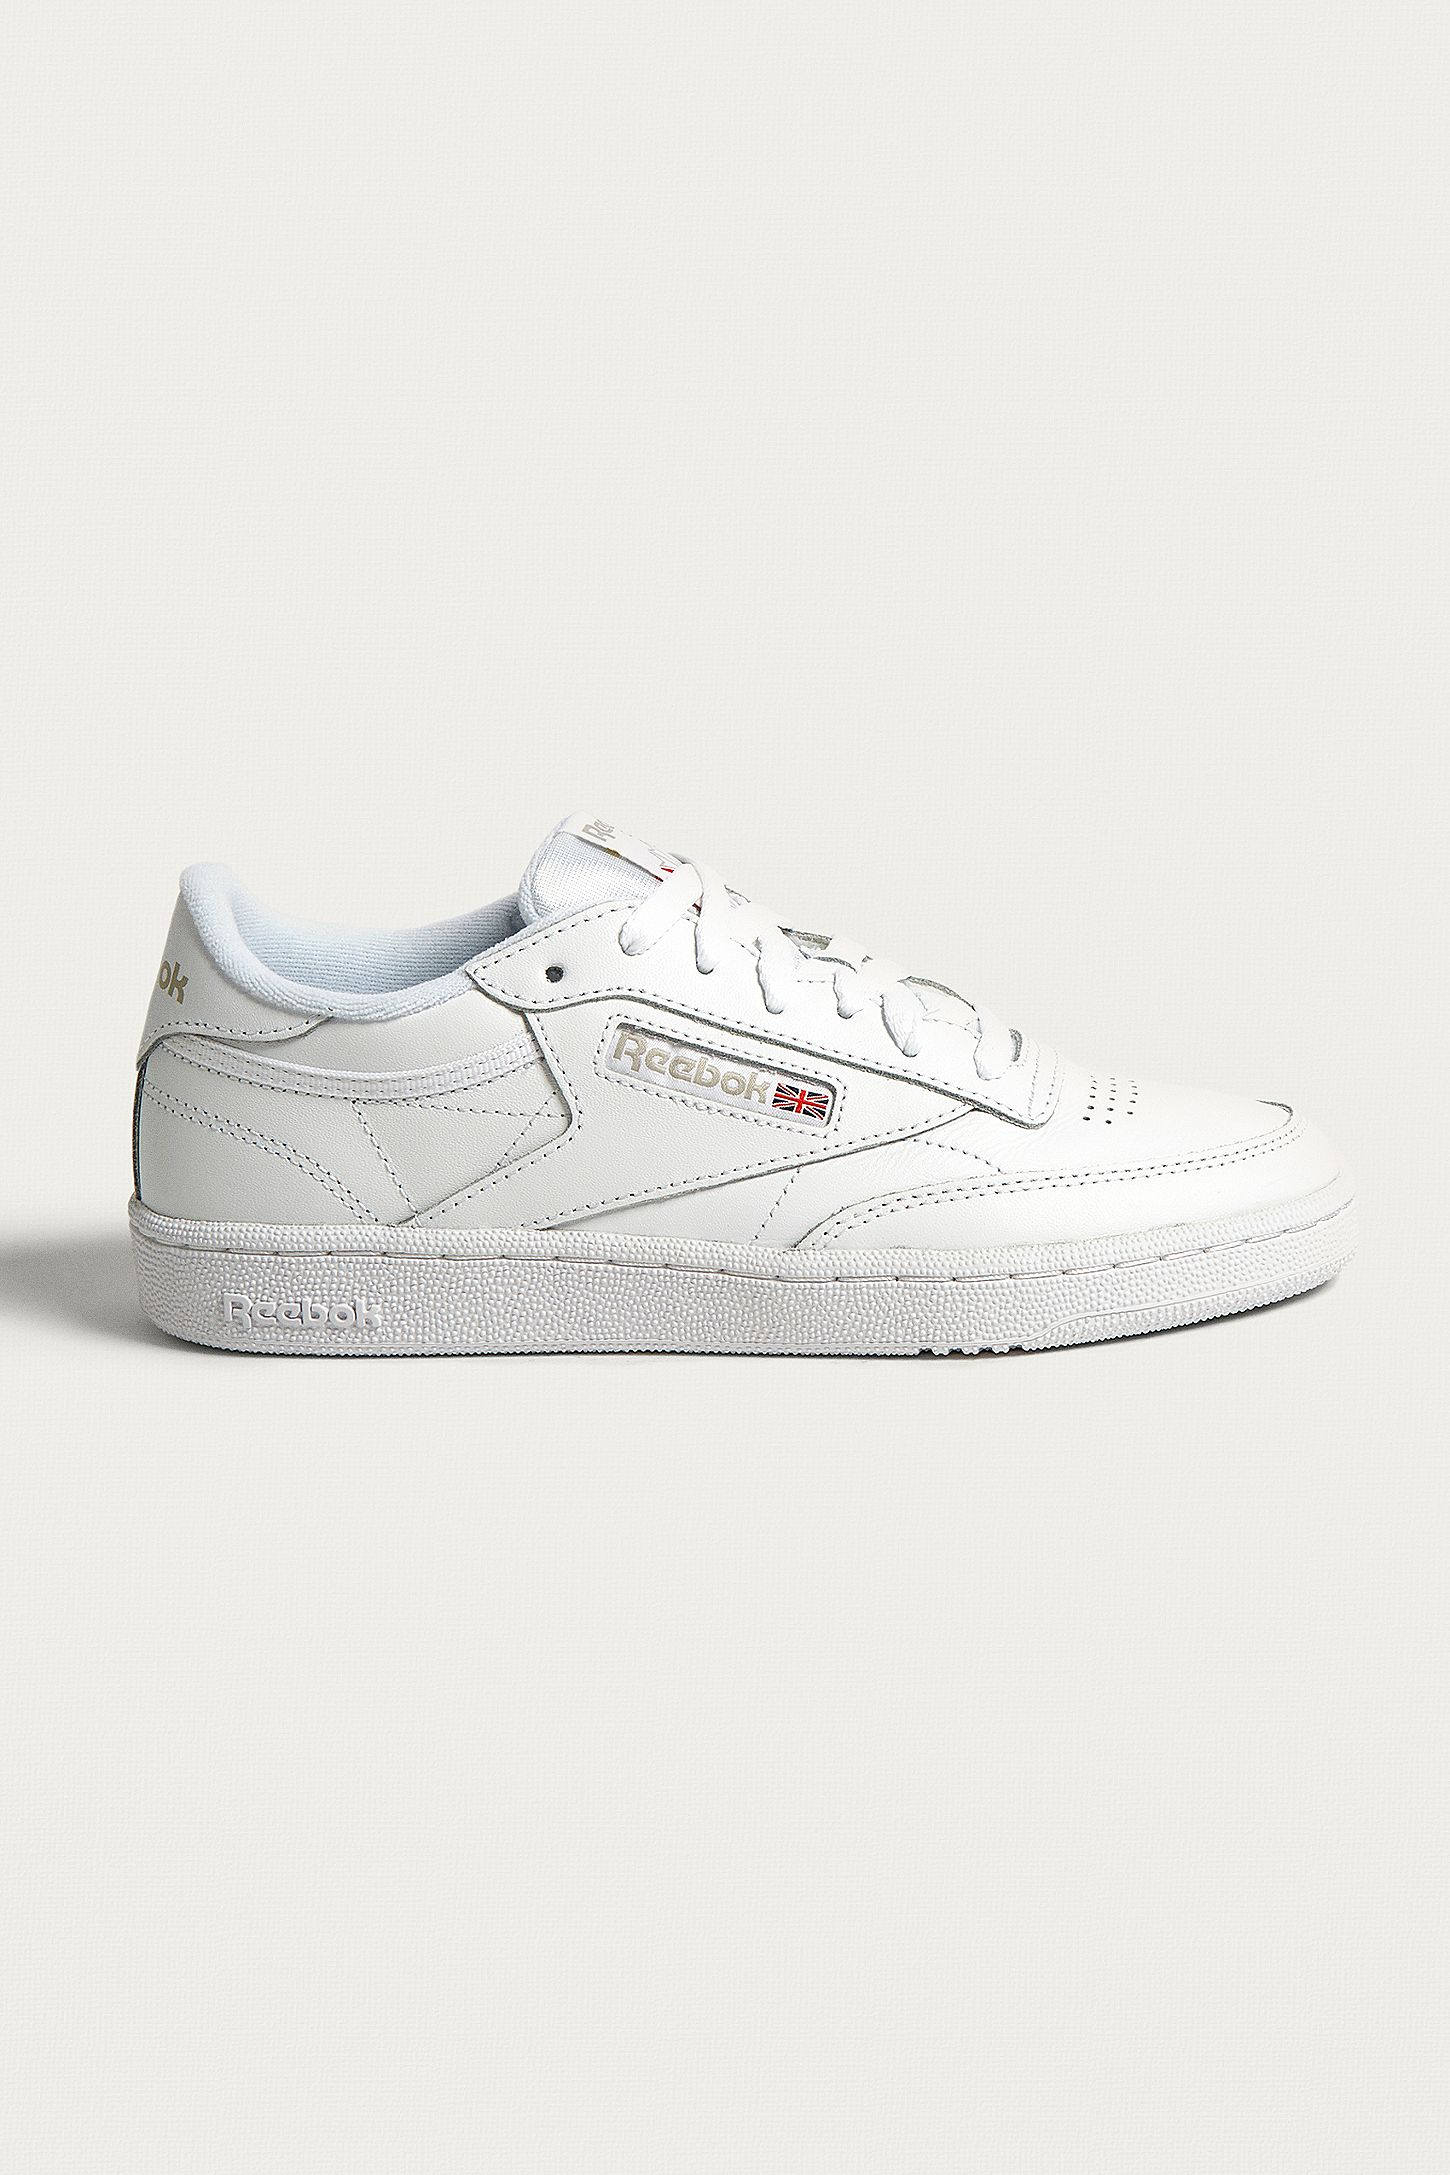 6acaa7a1fcf Reebok Club C 85 White on White Leather Trainers | Urban Outfitters UK